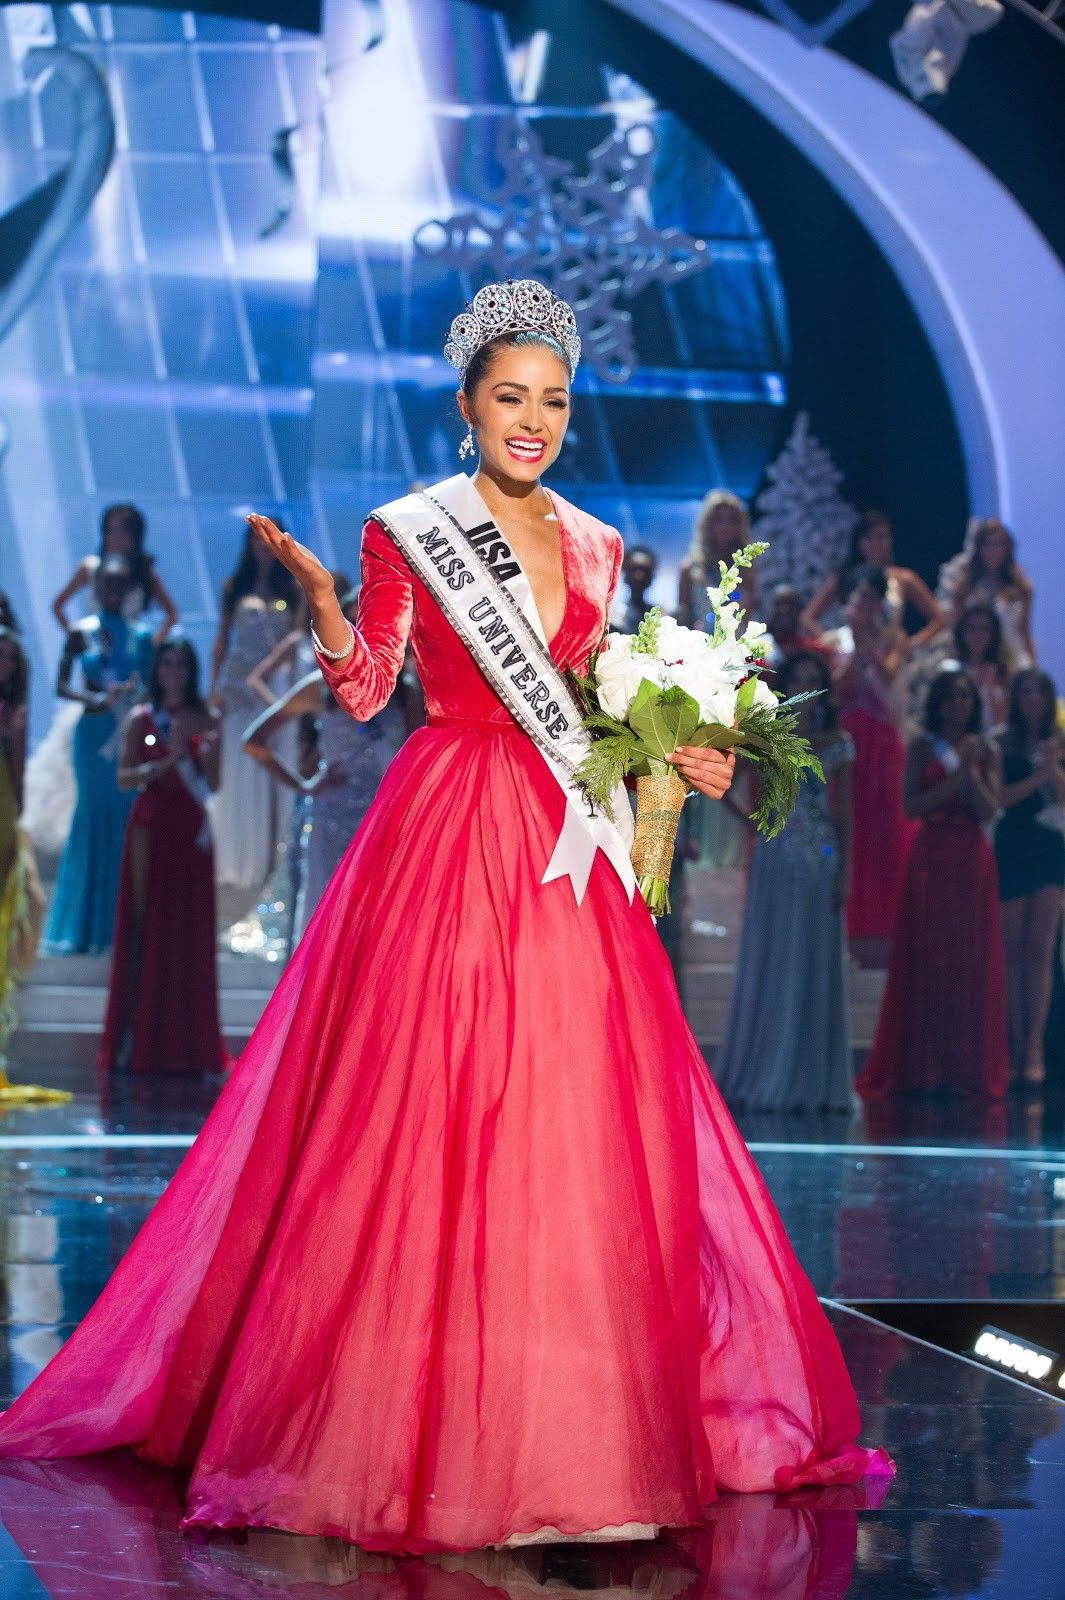 IN PHOTOS: Miss Universe 2012 Pageant